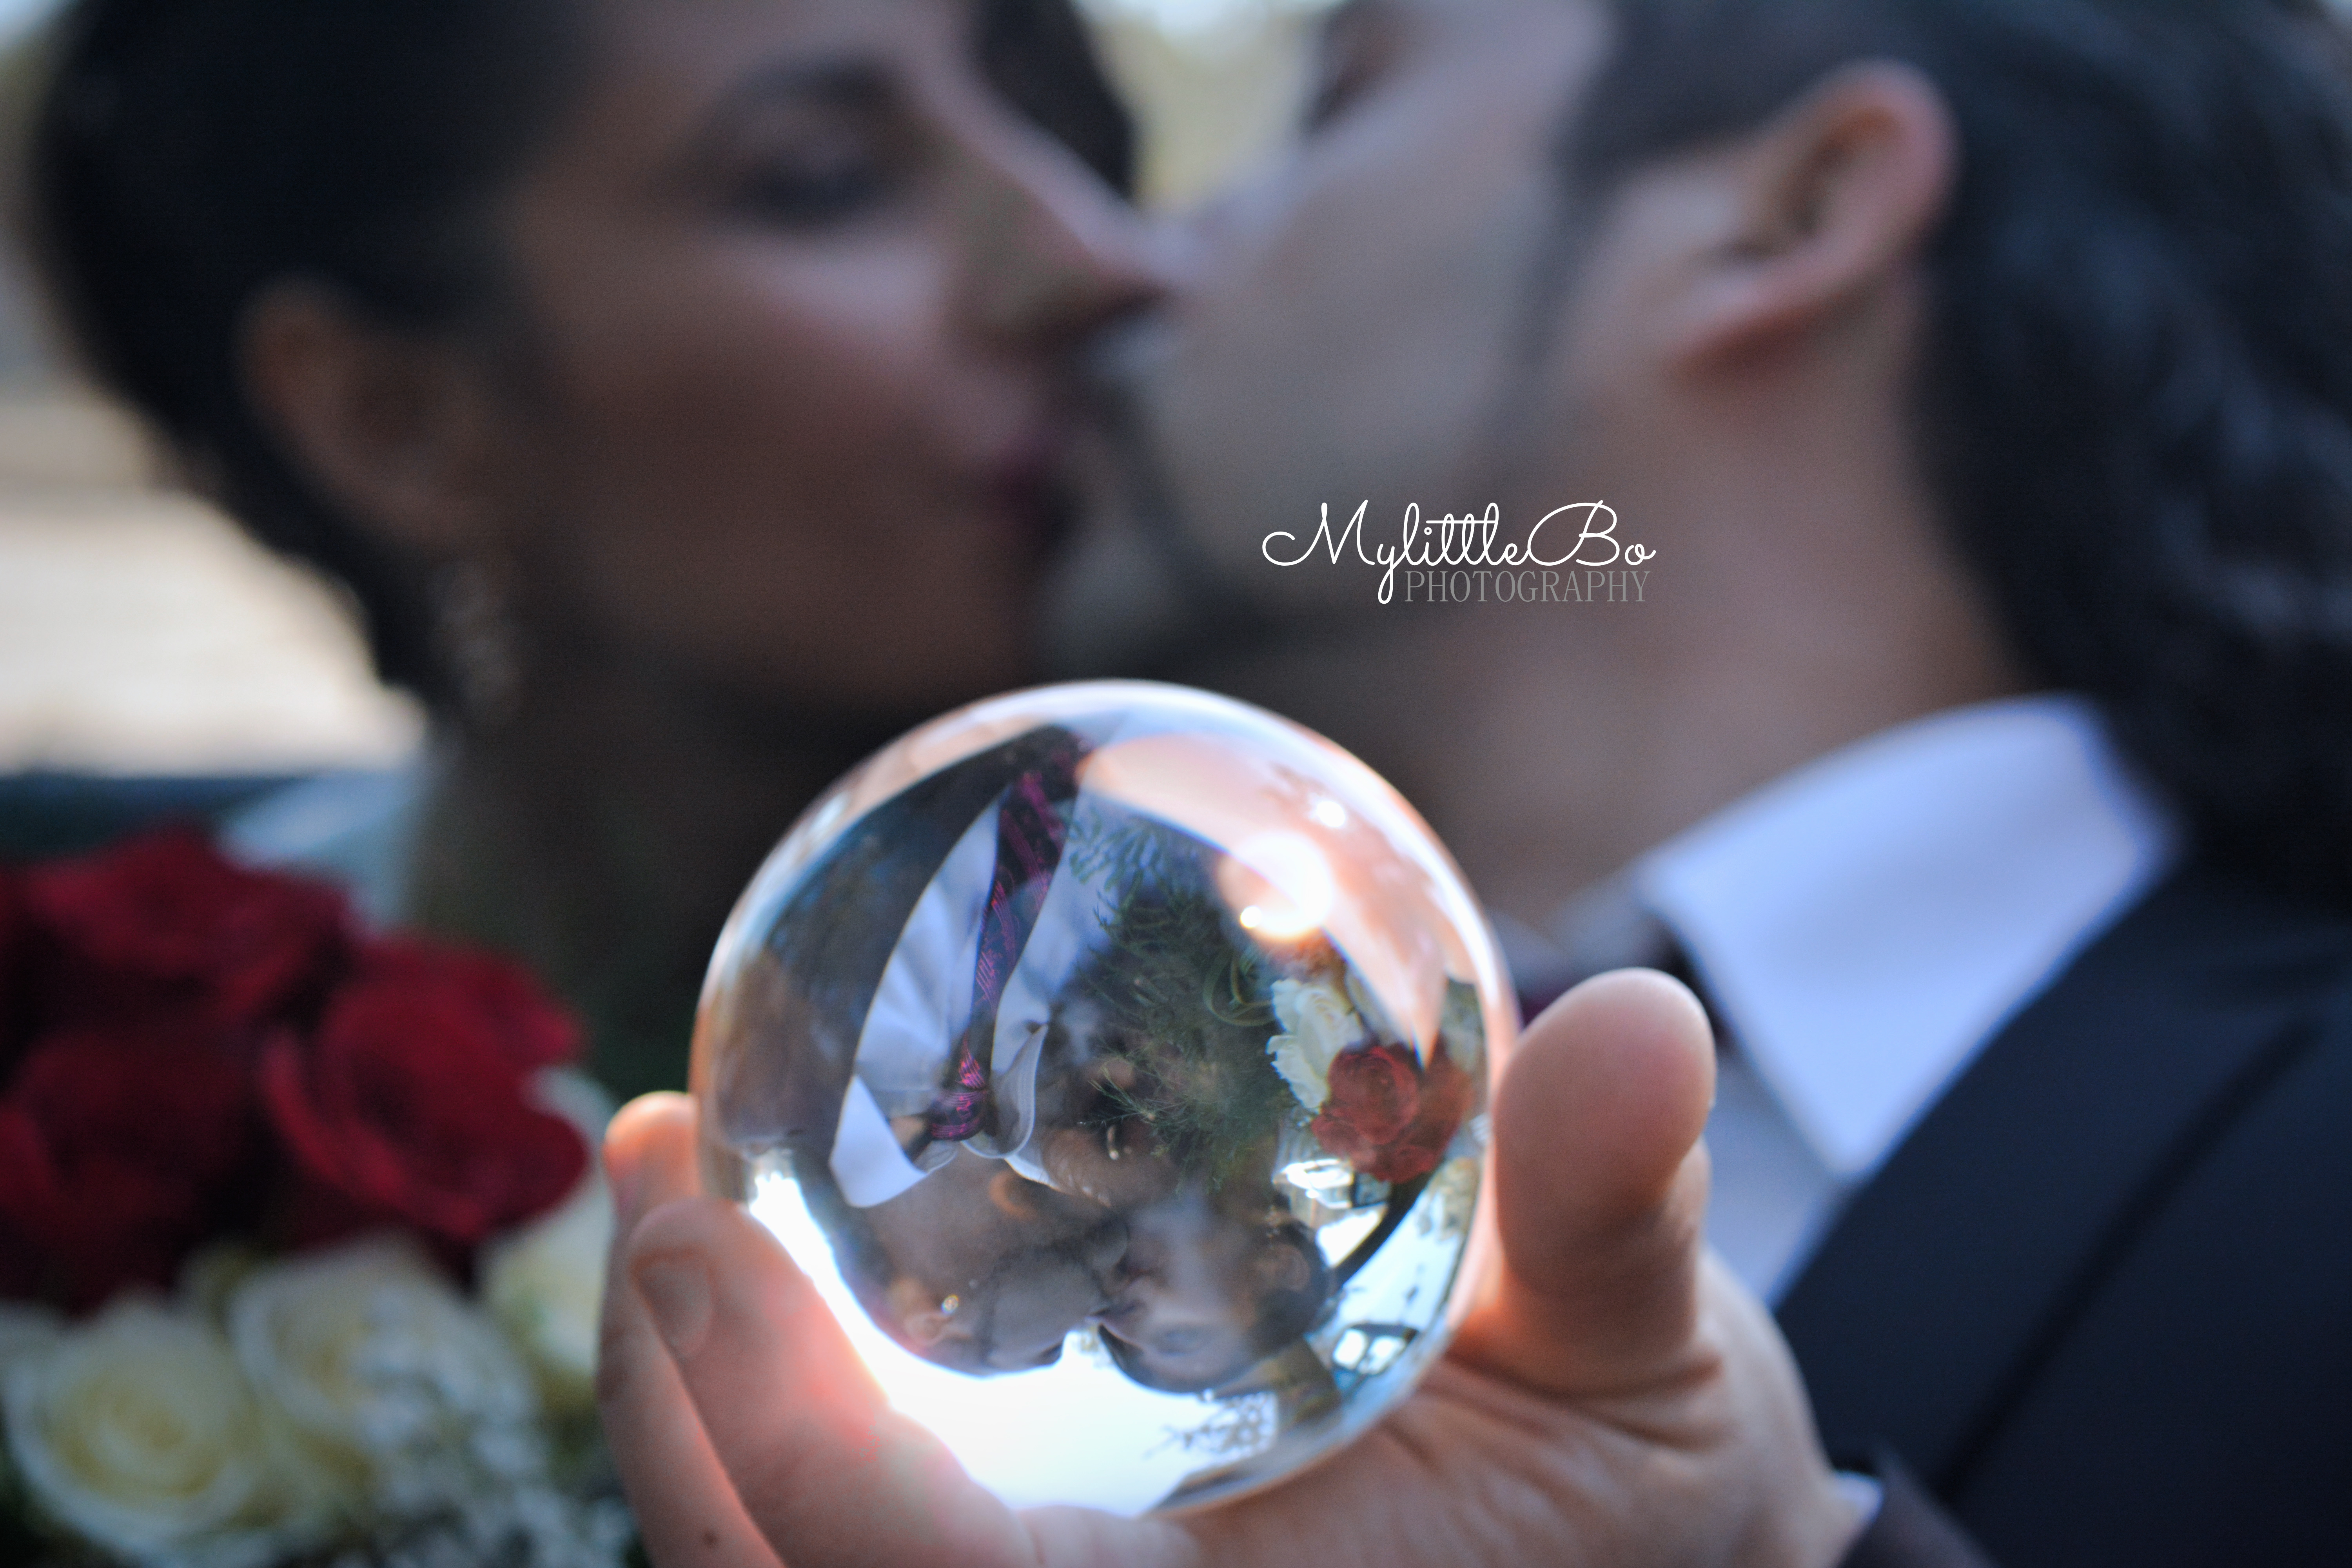 Kiss in the ball